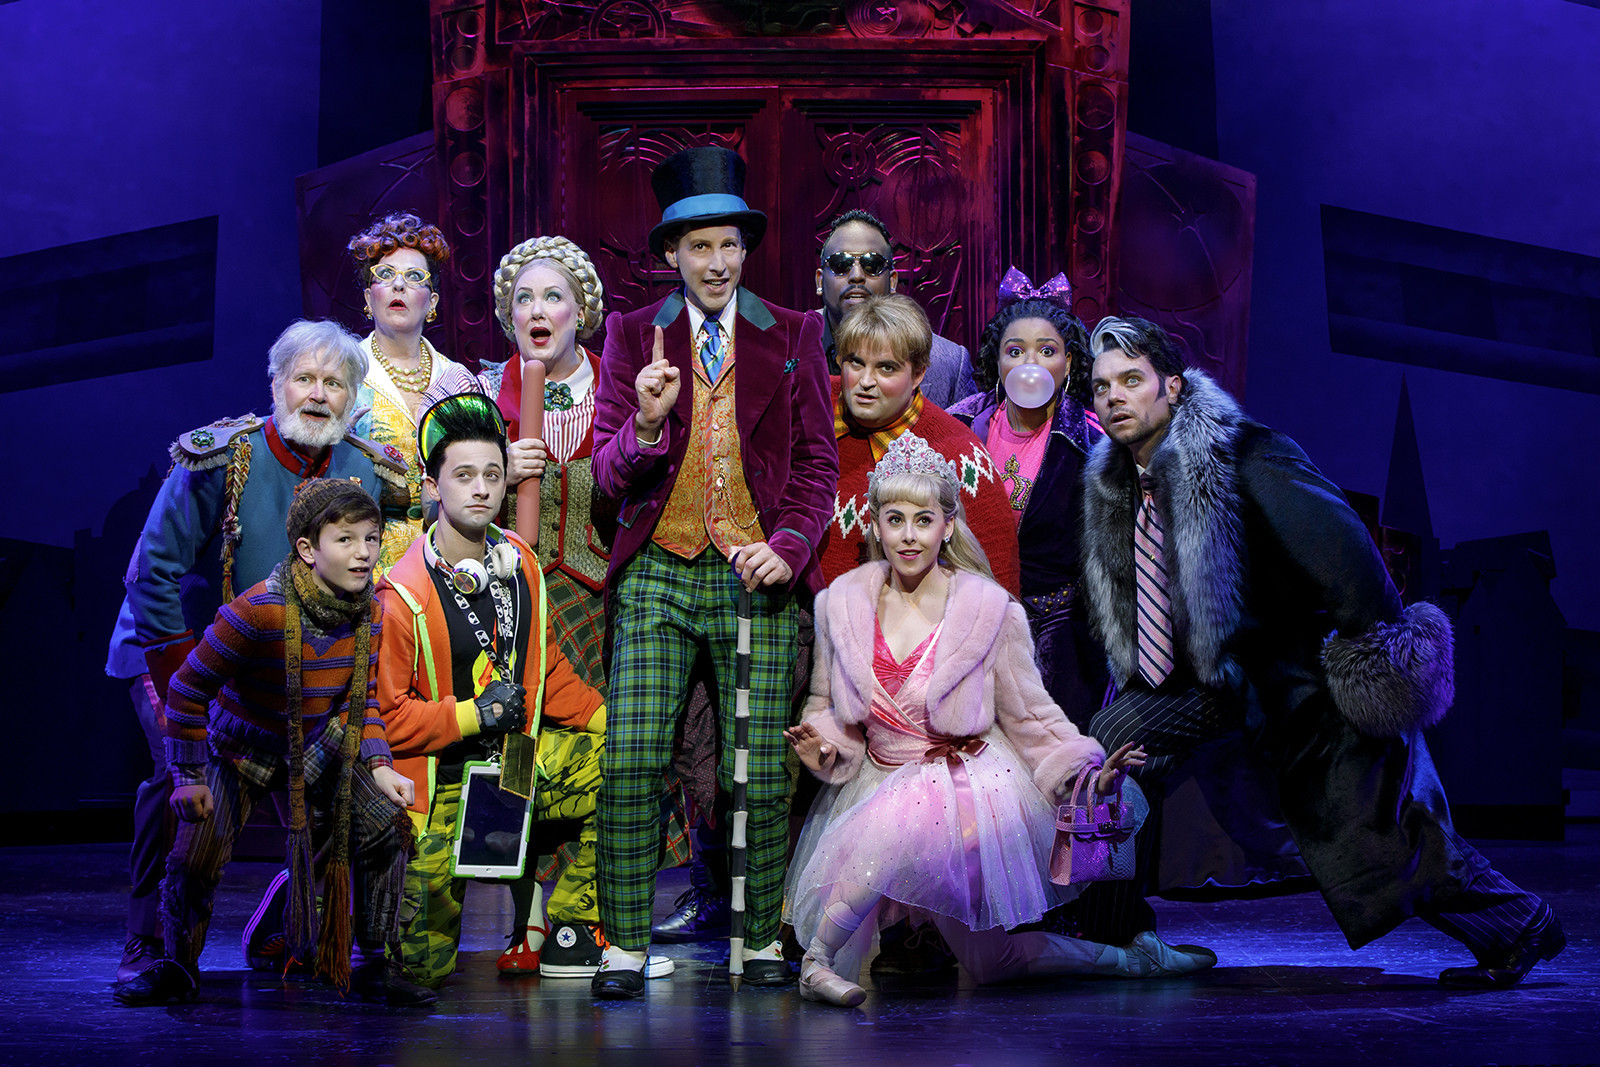 SoCal theater listings, March 24-31: 'Charlie and the Chocolate Factory' and more